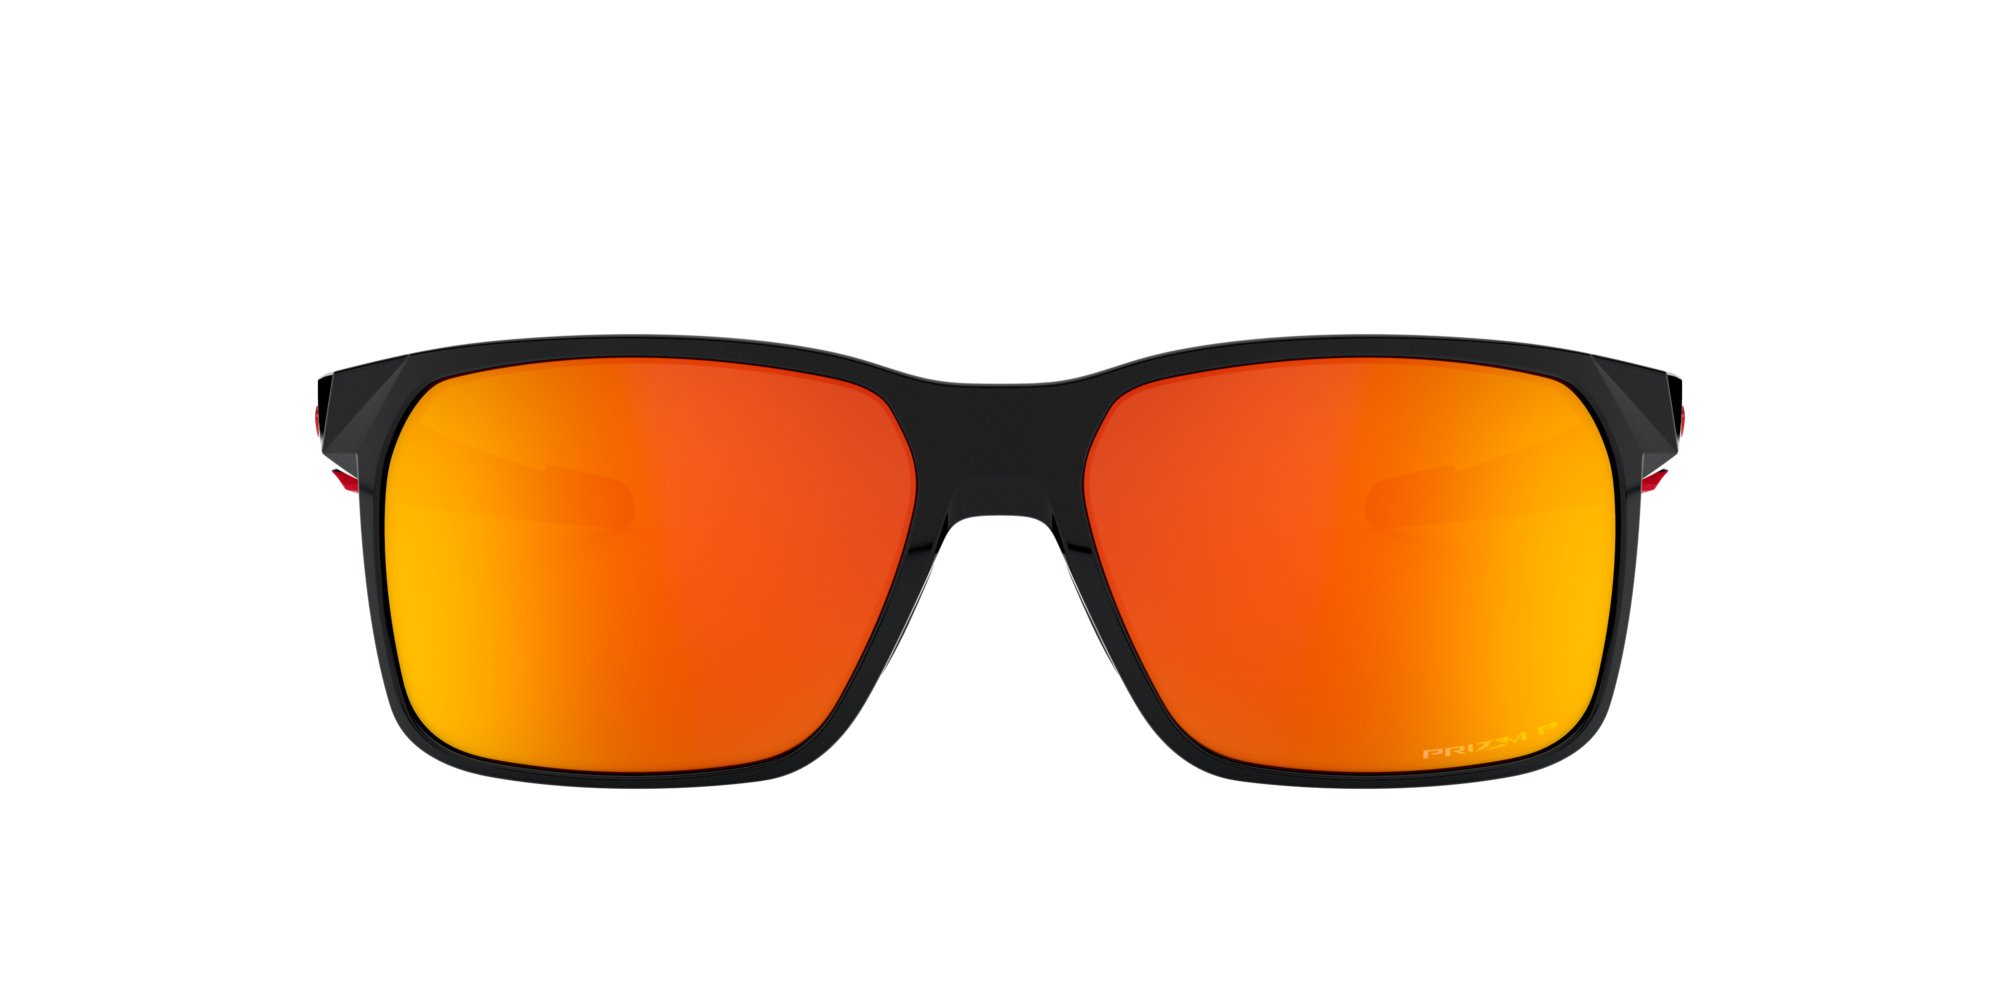 Image for OO9460 59 PORTAL X from LensCrafters   Glasses, Prescription Glasses Online, Eyewear